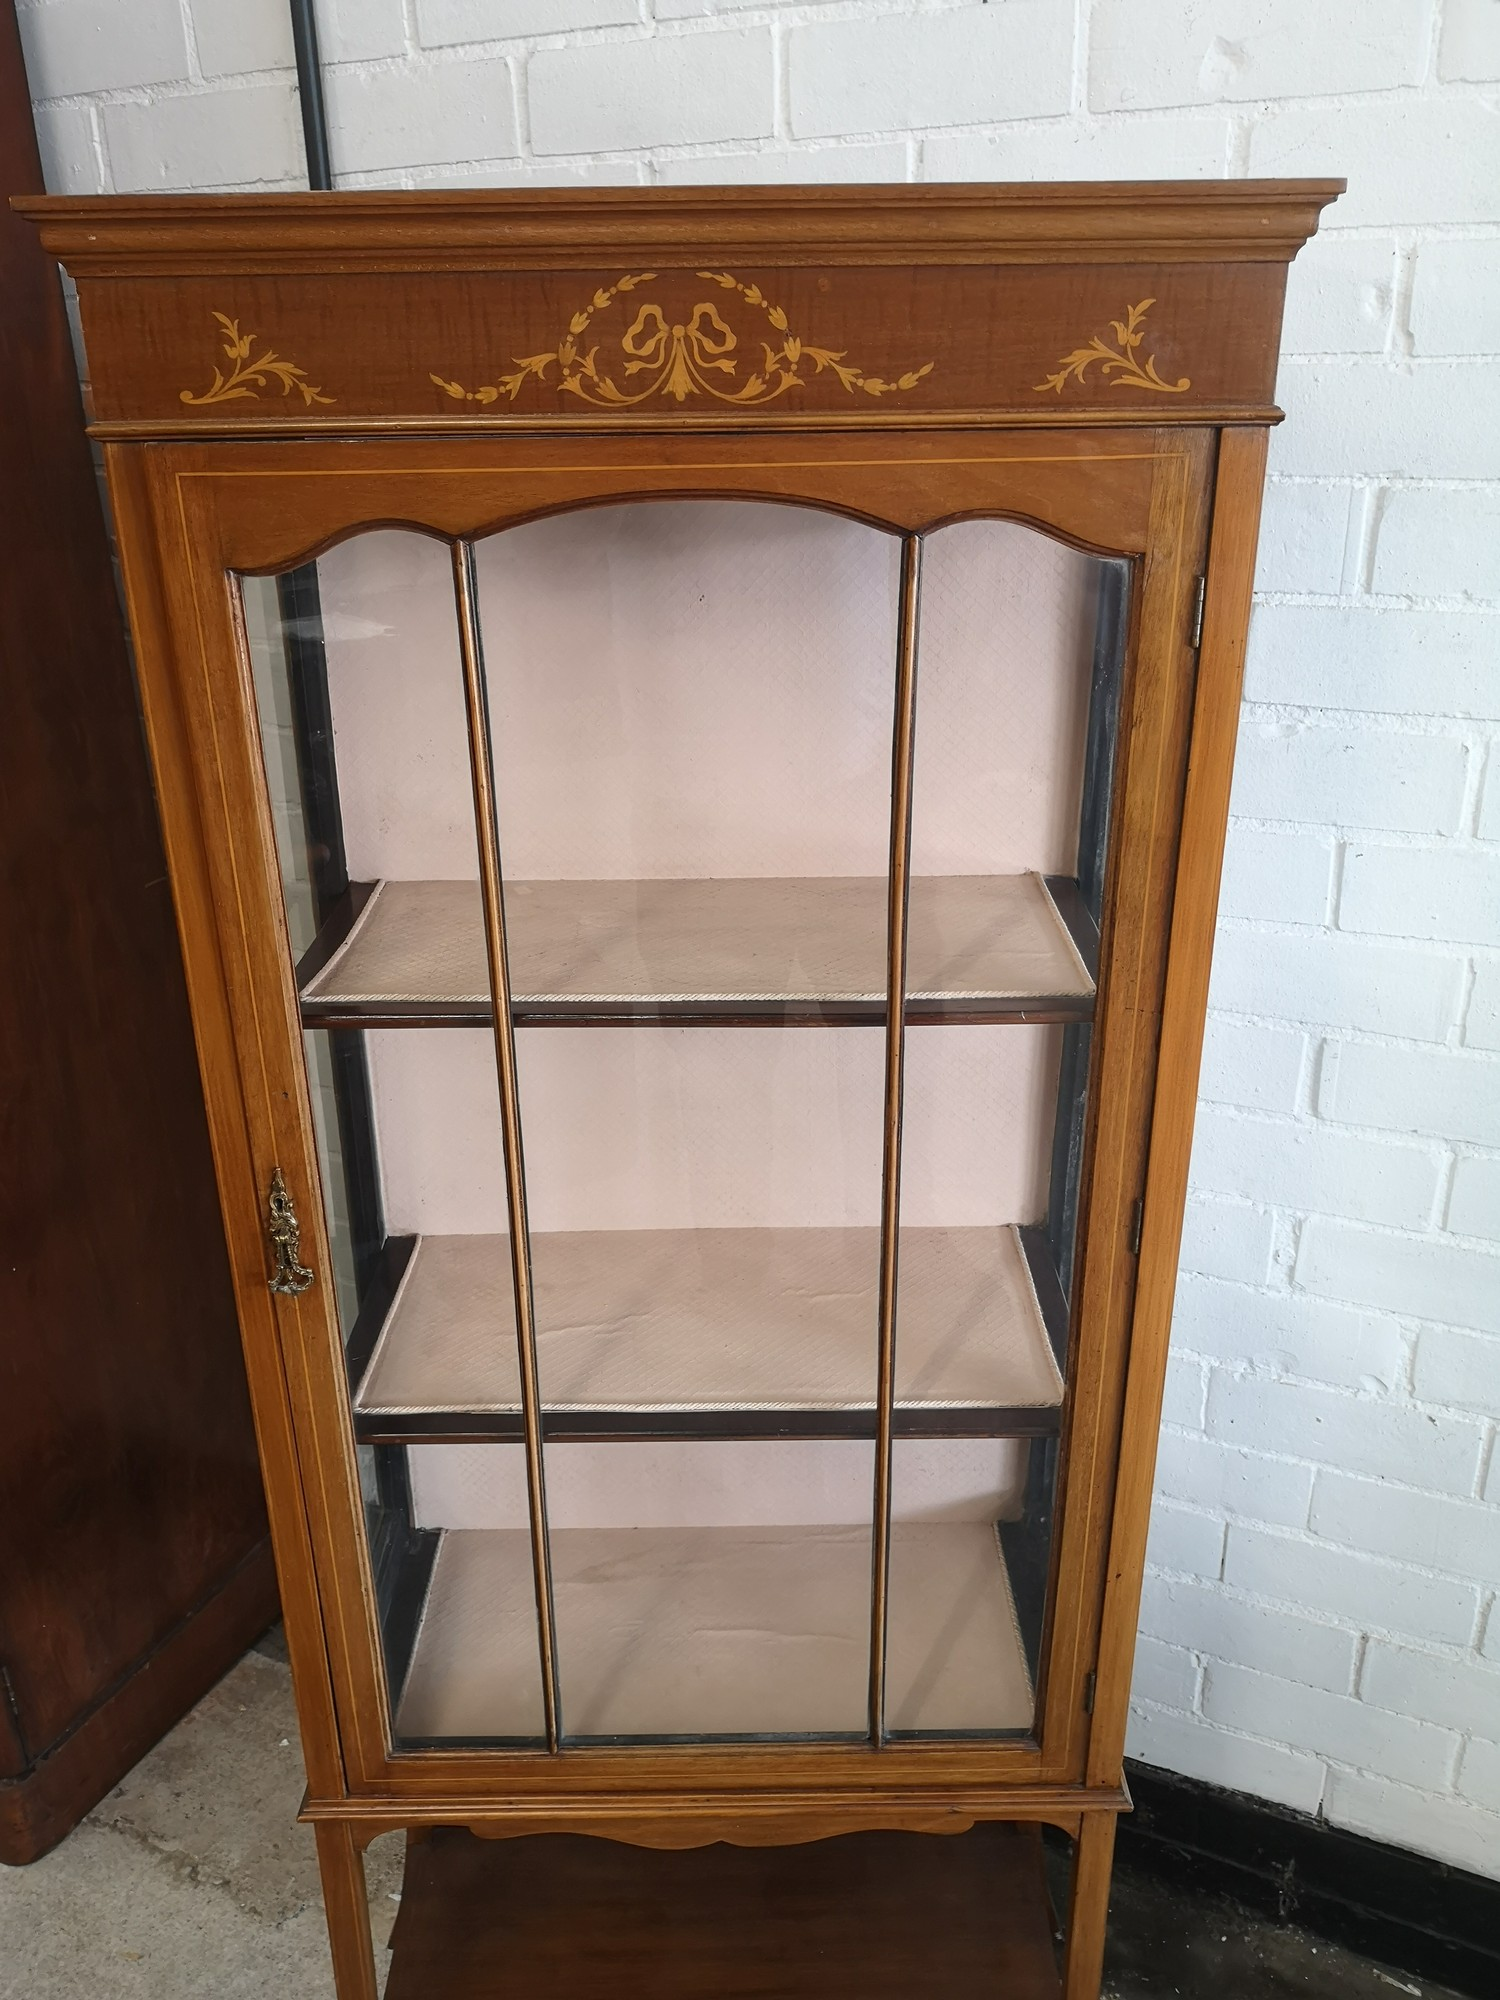 Beautiful Edwardian Inlaid 3 section display cabinet with inlays to top. - Image 3 of 4